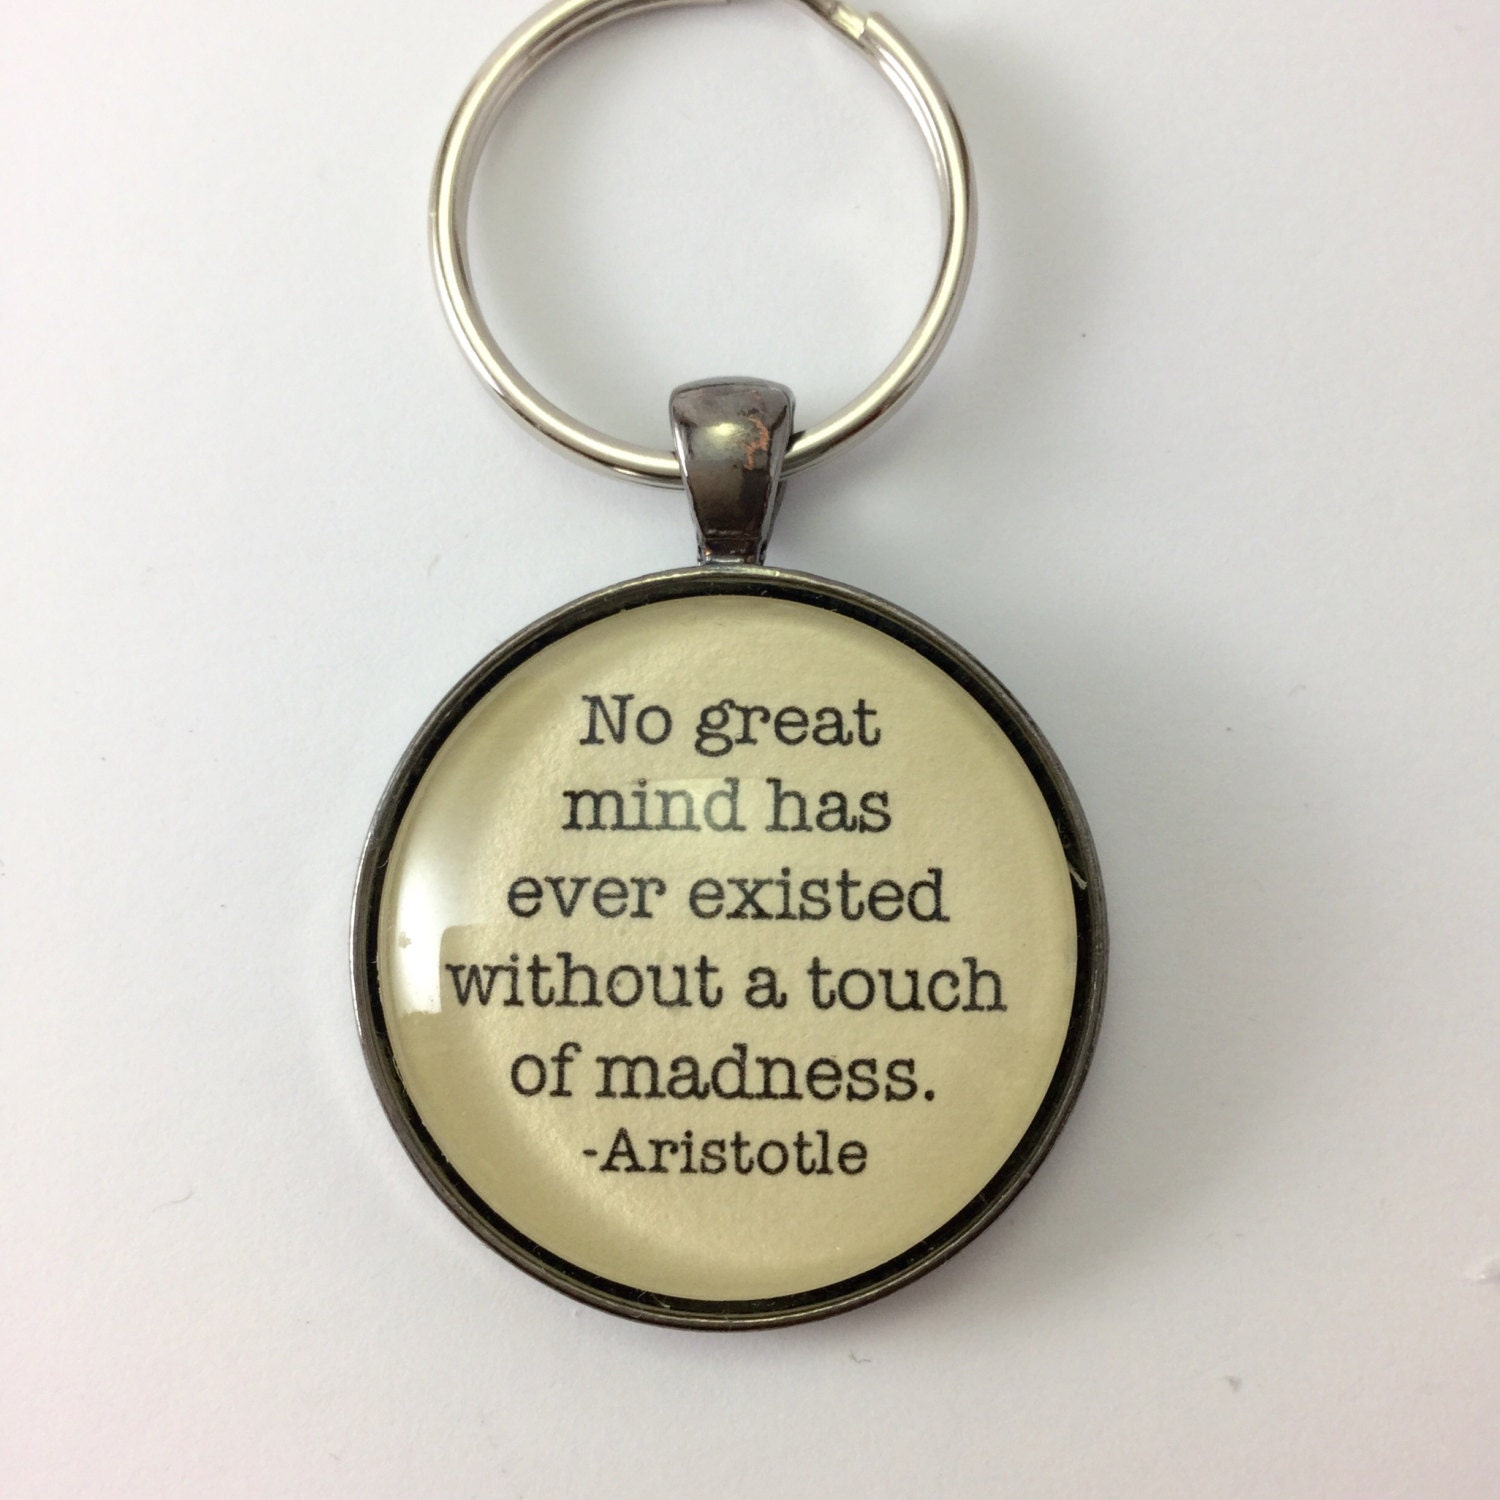 Keychains Lanyards Lightupcircuitboardkeychain Aristotle Quote Inspirational Keychain For Student Reader Pendant Jewelry